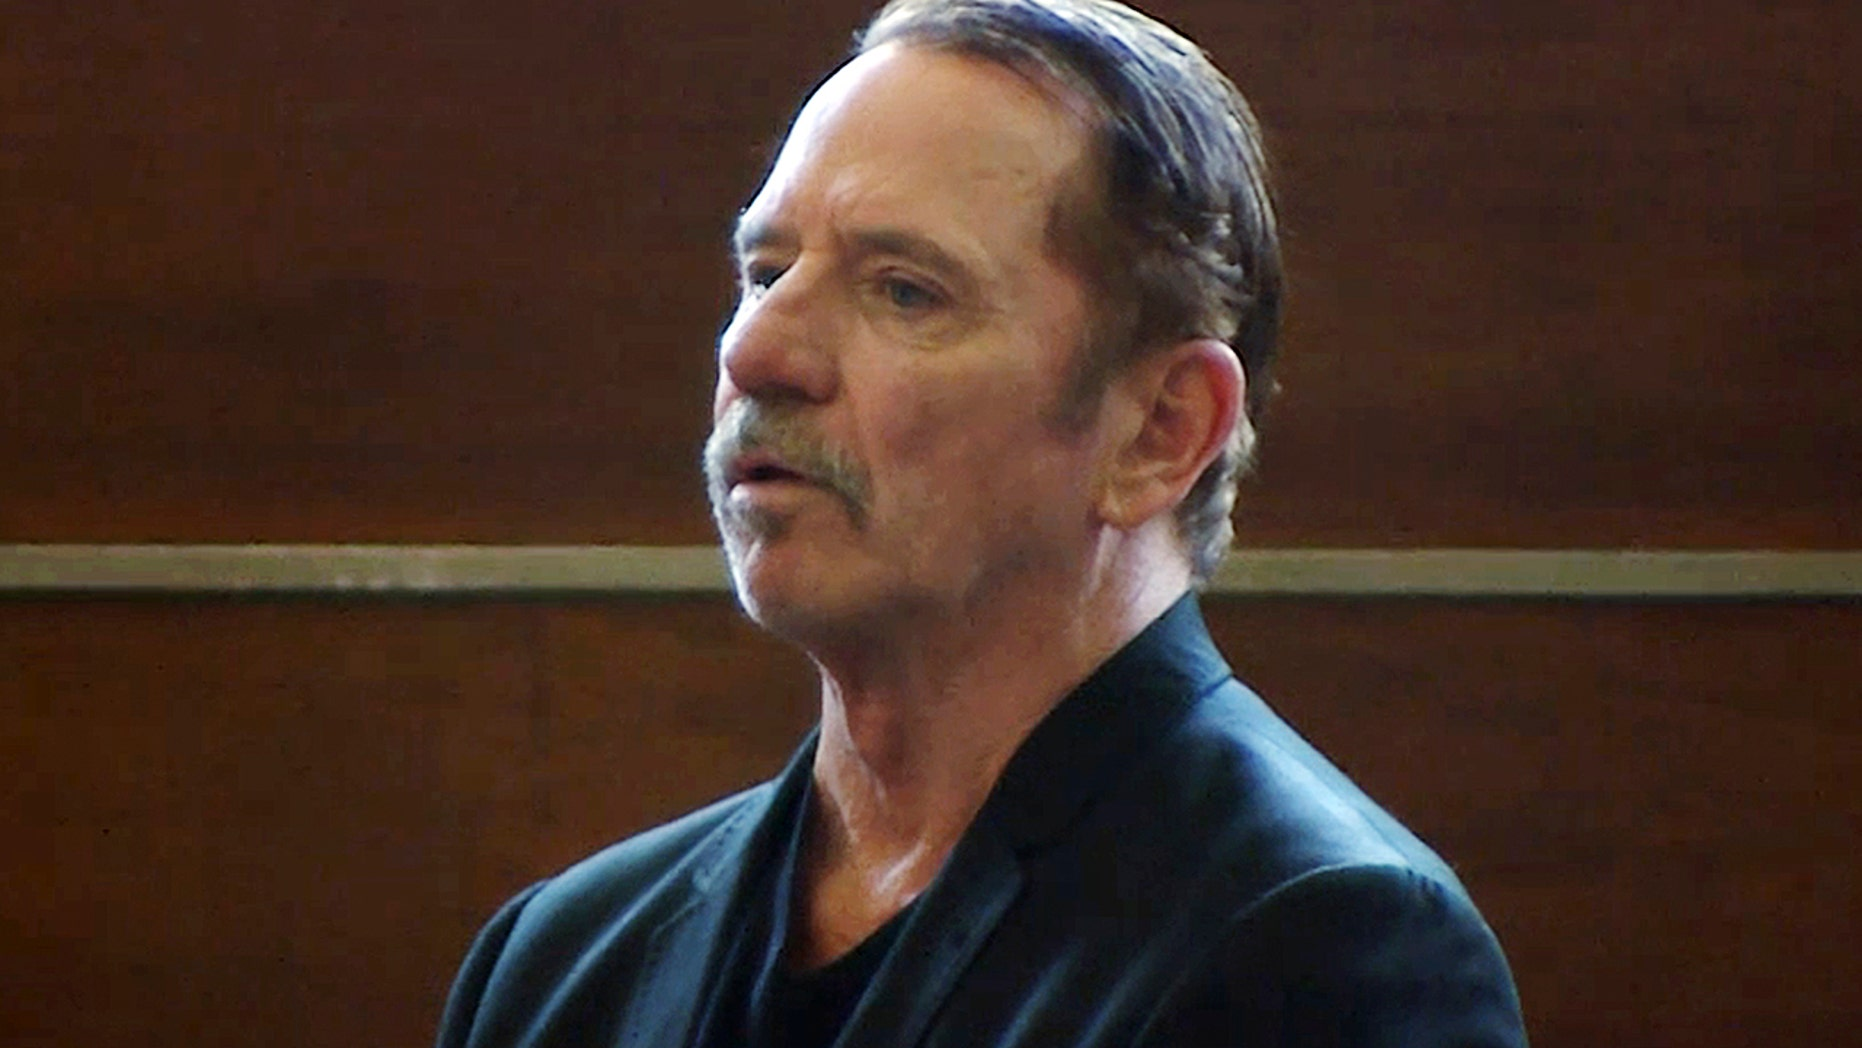 In this Aug. 3, 2017 file frame from video, actor Tom Wopat stands during arraignment in Waltham, Mass., on indecent assault and battery and drug possession charges.